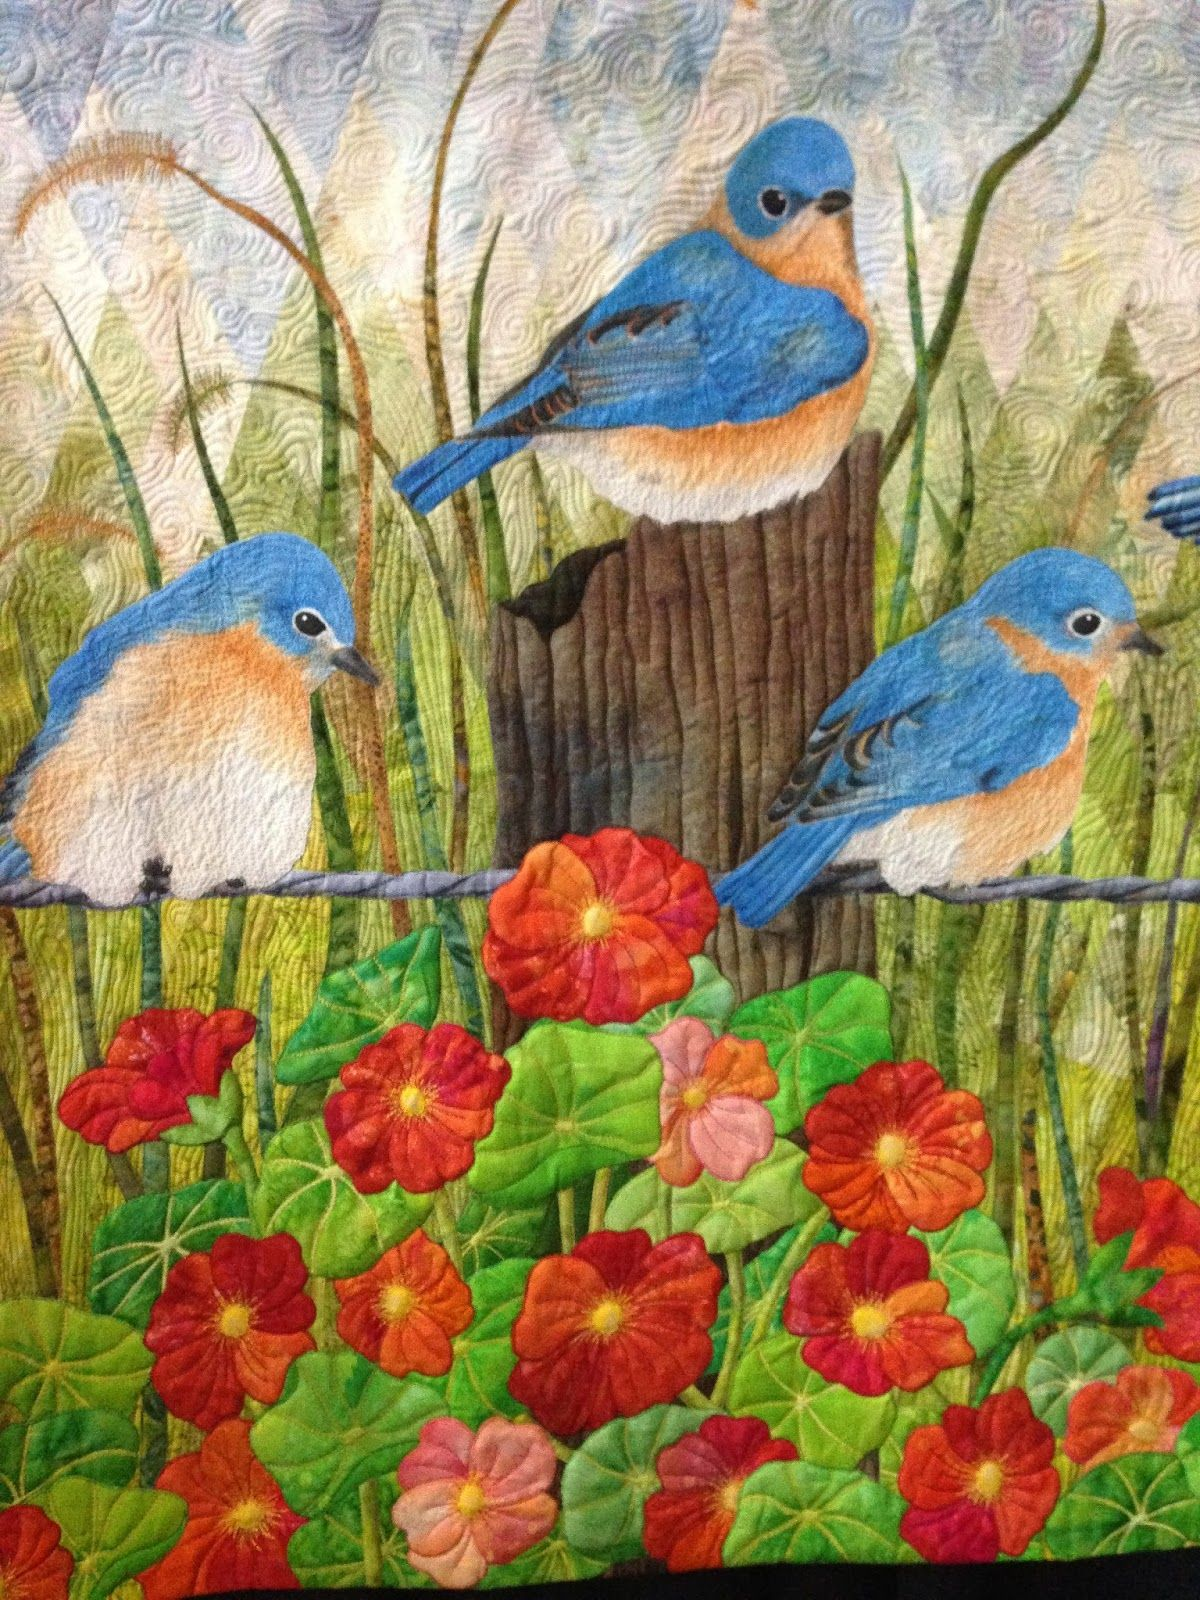 """Bluebirds"" by Laura Ruiz of Malabar, FL.  Best Pictorial Quilt, 2014 World Quilt Show - Florida.  Closeup photo by Blooming in Chintz."